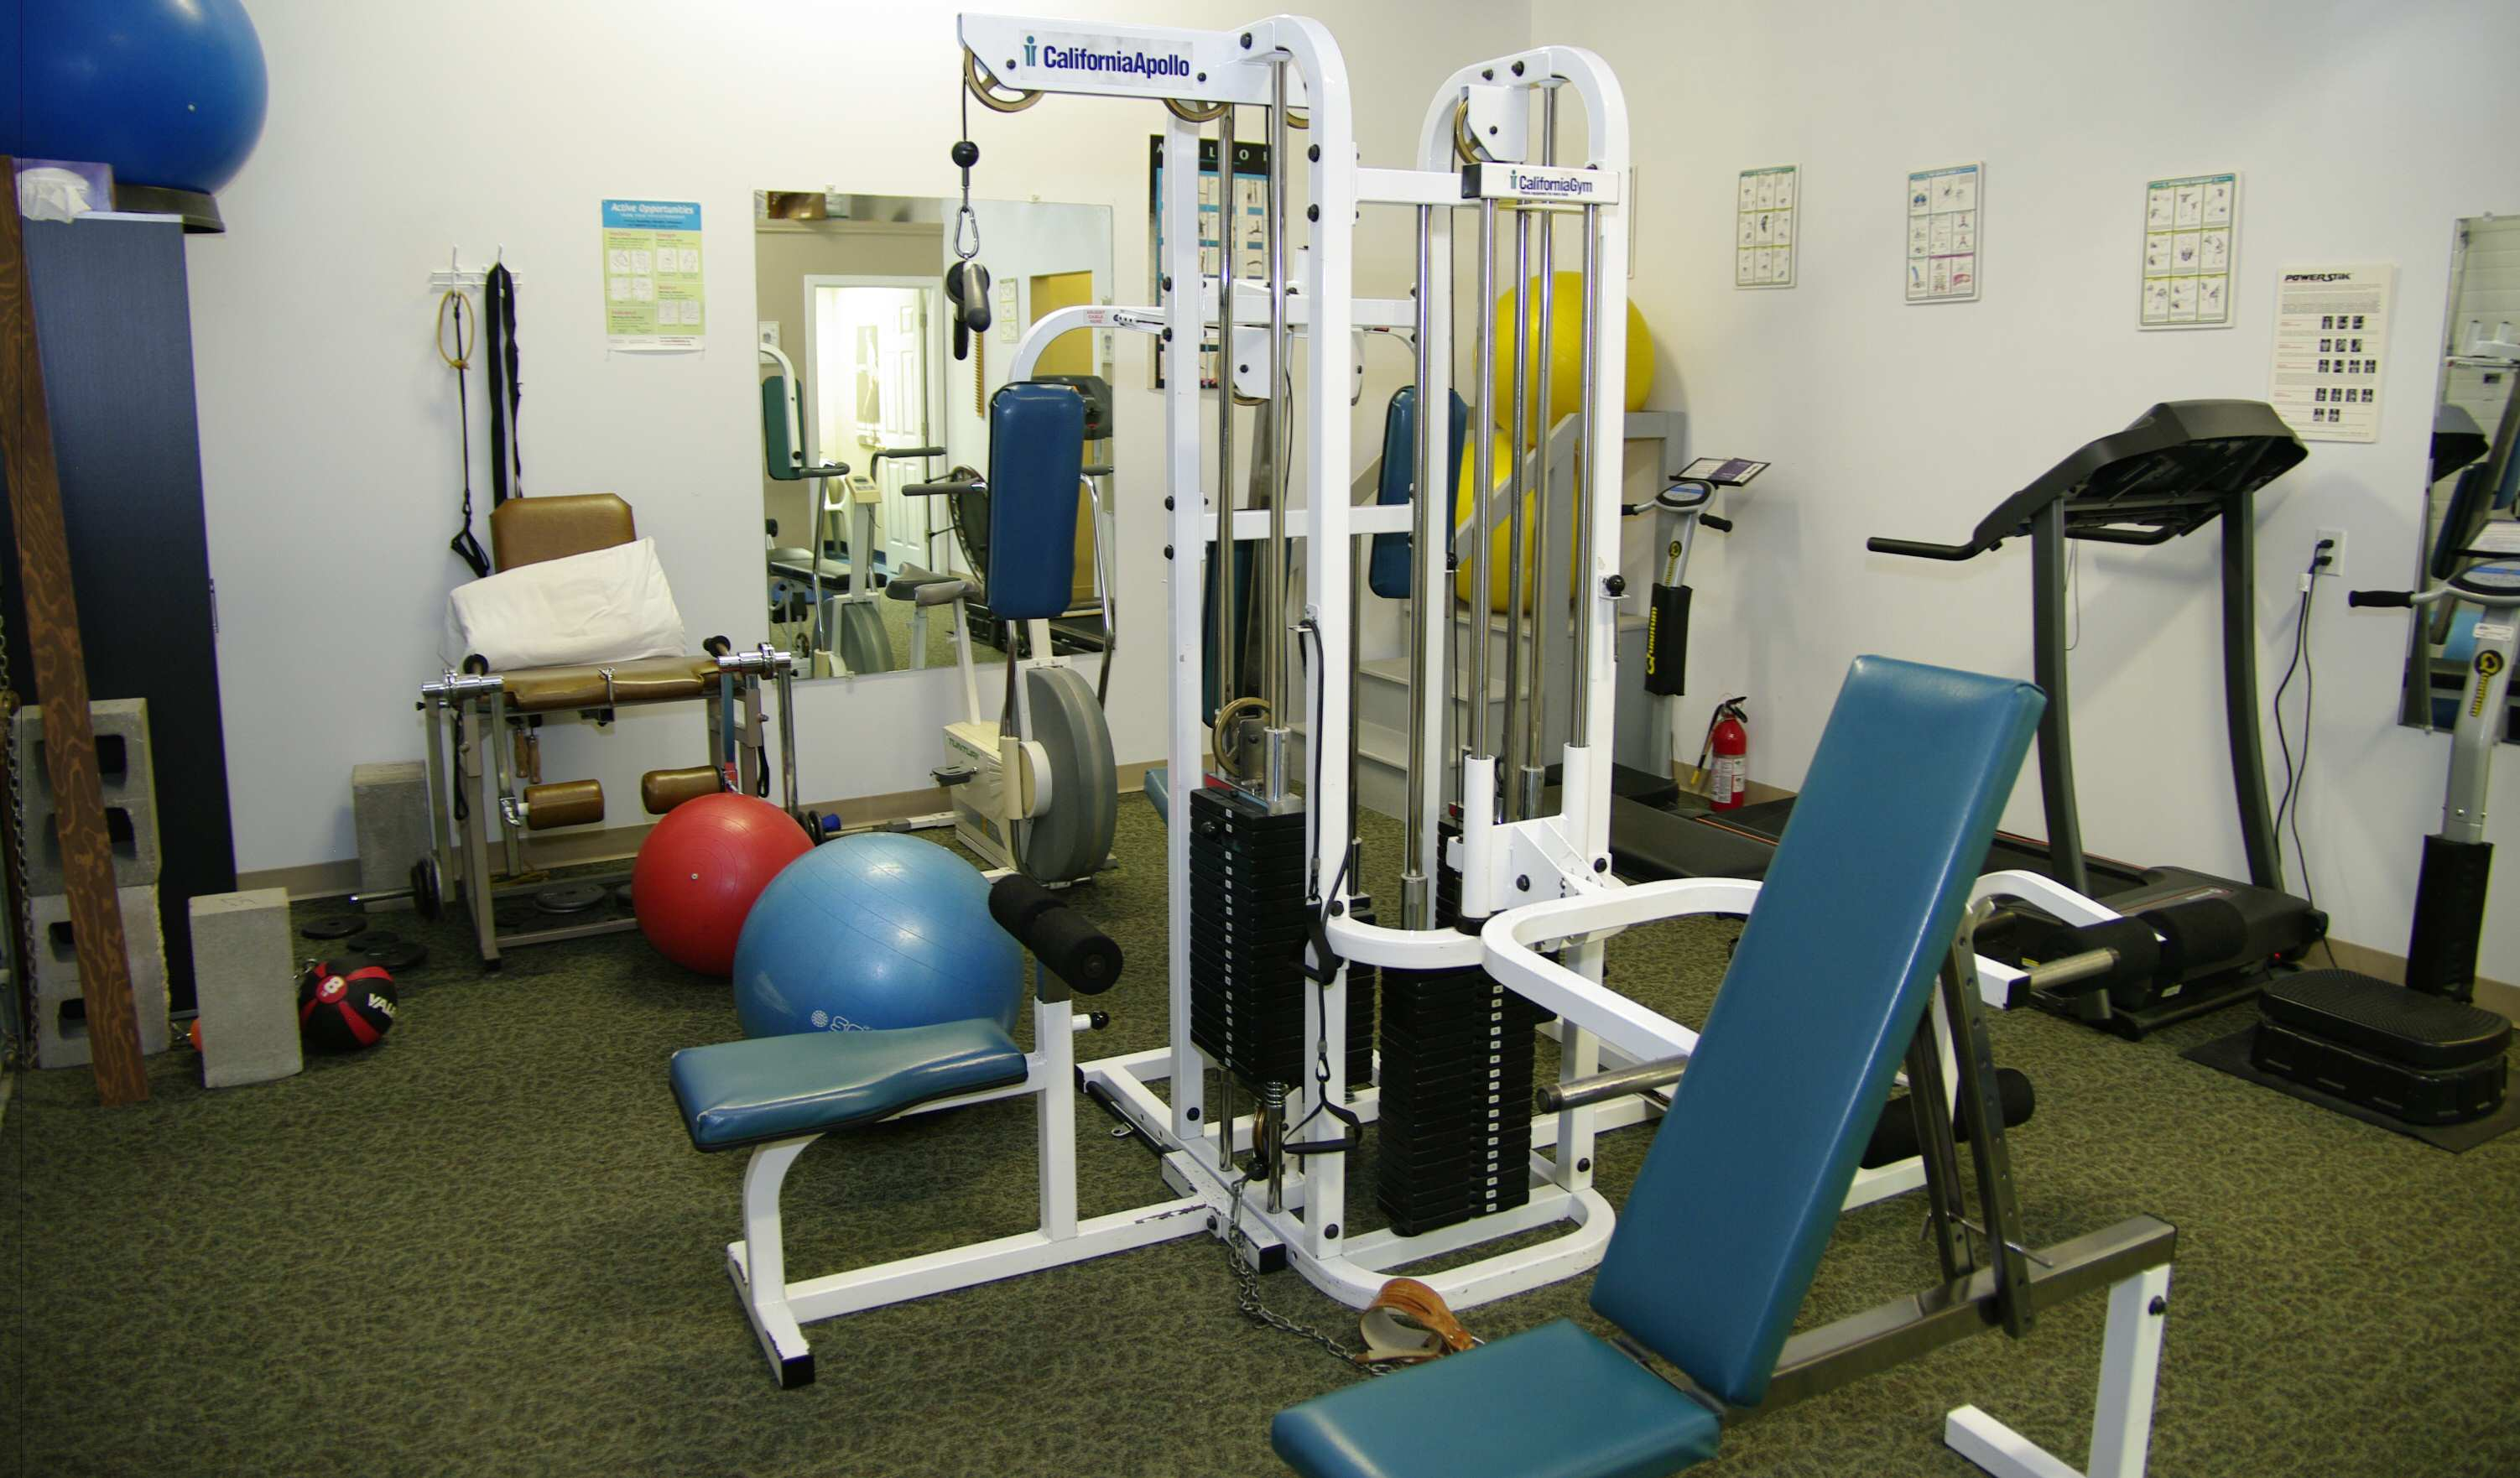 The St. James Rhab clinic provides a gym area and equipment for use by its clients